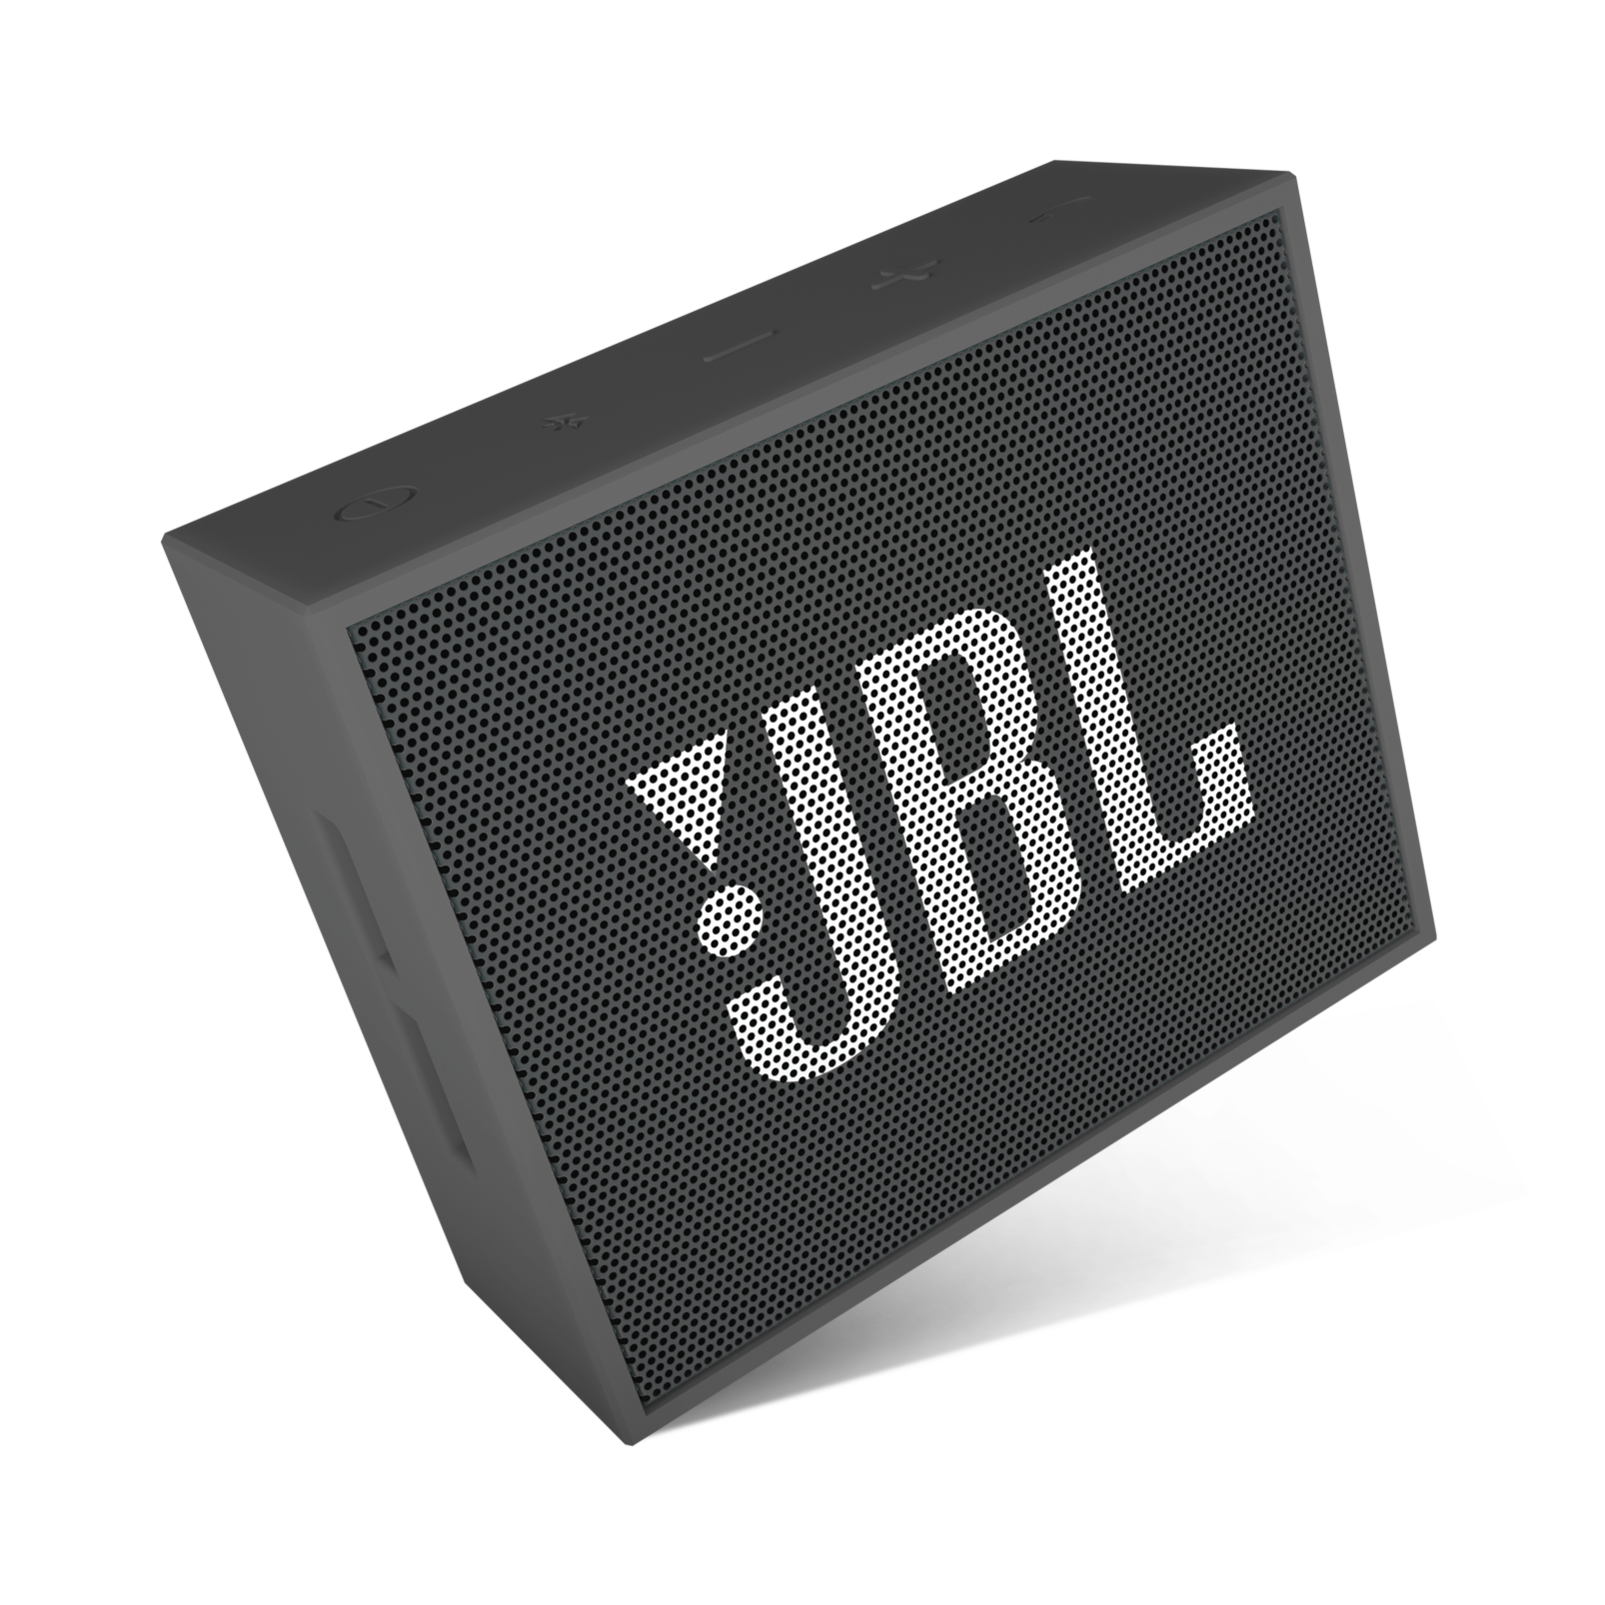 Jbl Go Portable Mini Bluetooth Speaker Usb To And 35mm Audio Adapter Cable Kabel Untuk Charger Aux Original